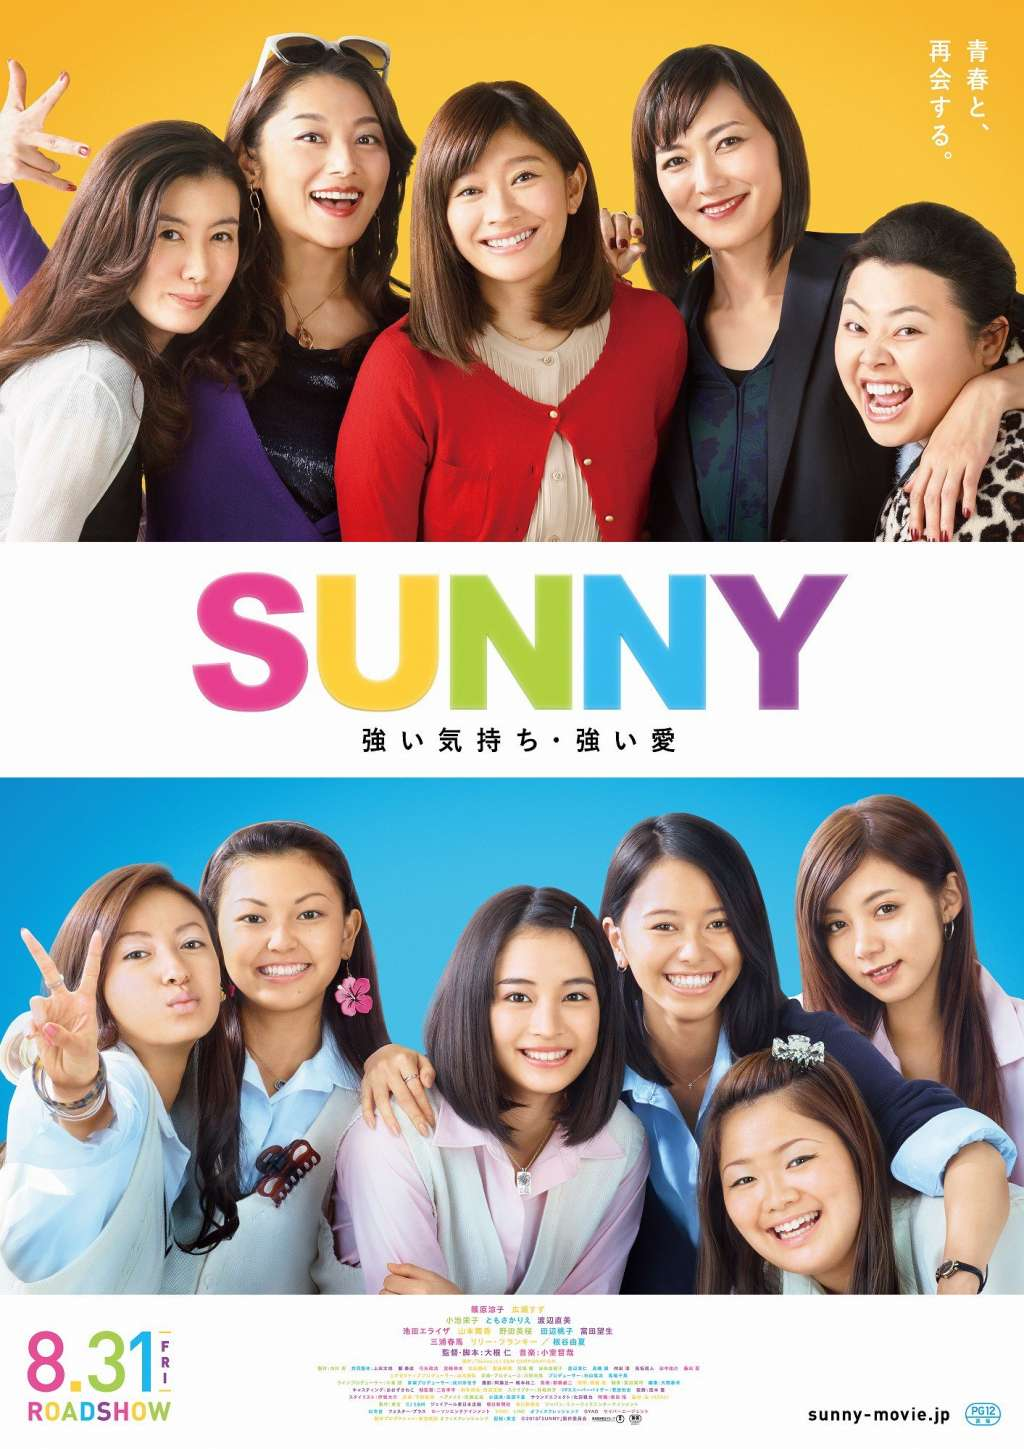 Sunny: Our Hearts Beat Together kapak